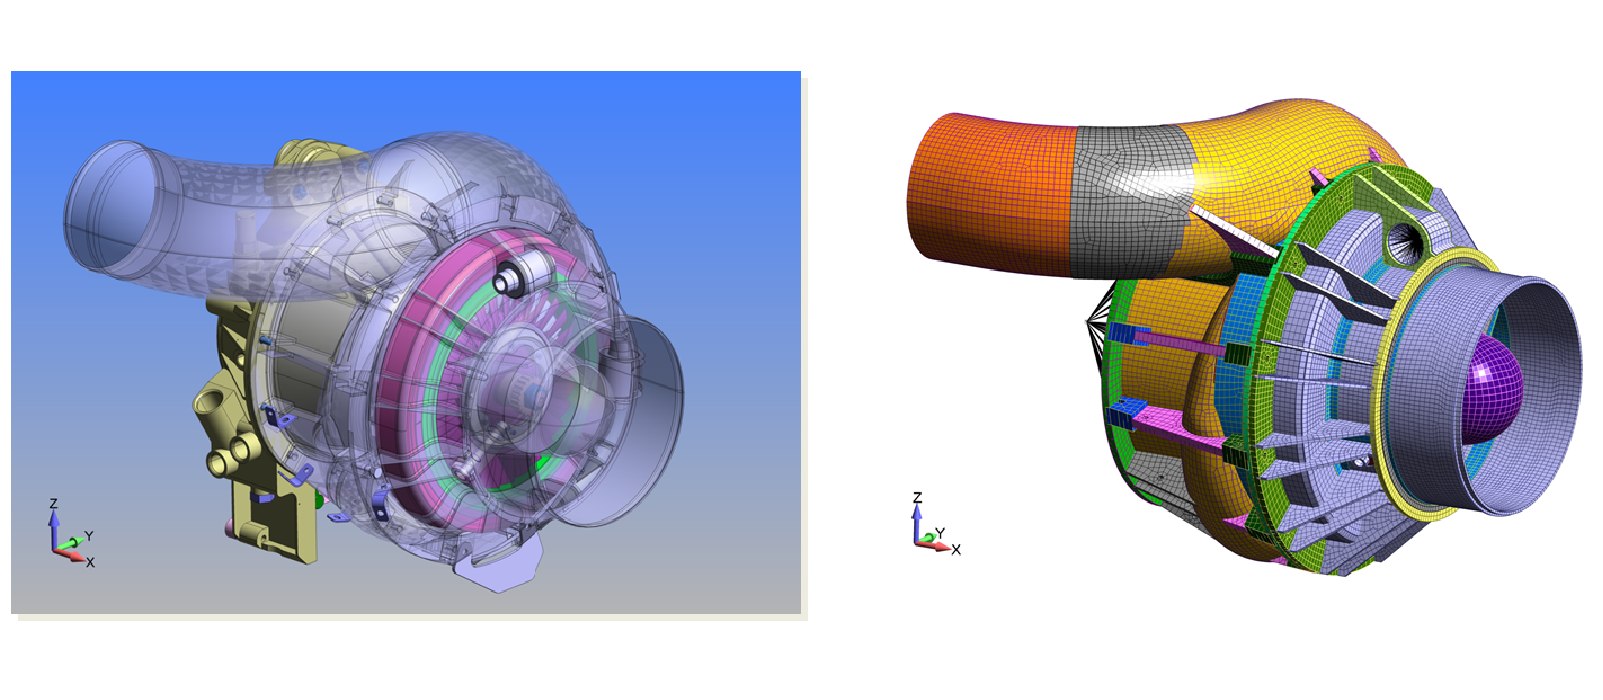 Figure 1:  LS-DYNA model of aviation turbine system with geometry in Catia and final structured mesh of bricks, plates, rigid links, mass elements and contact surfaces.